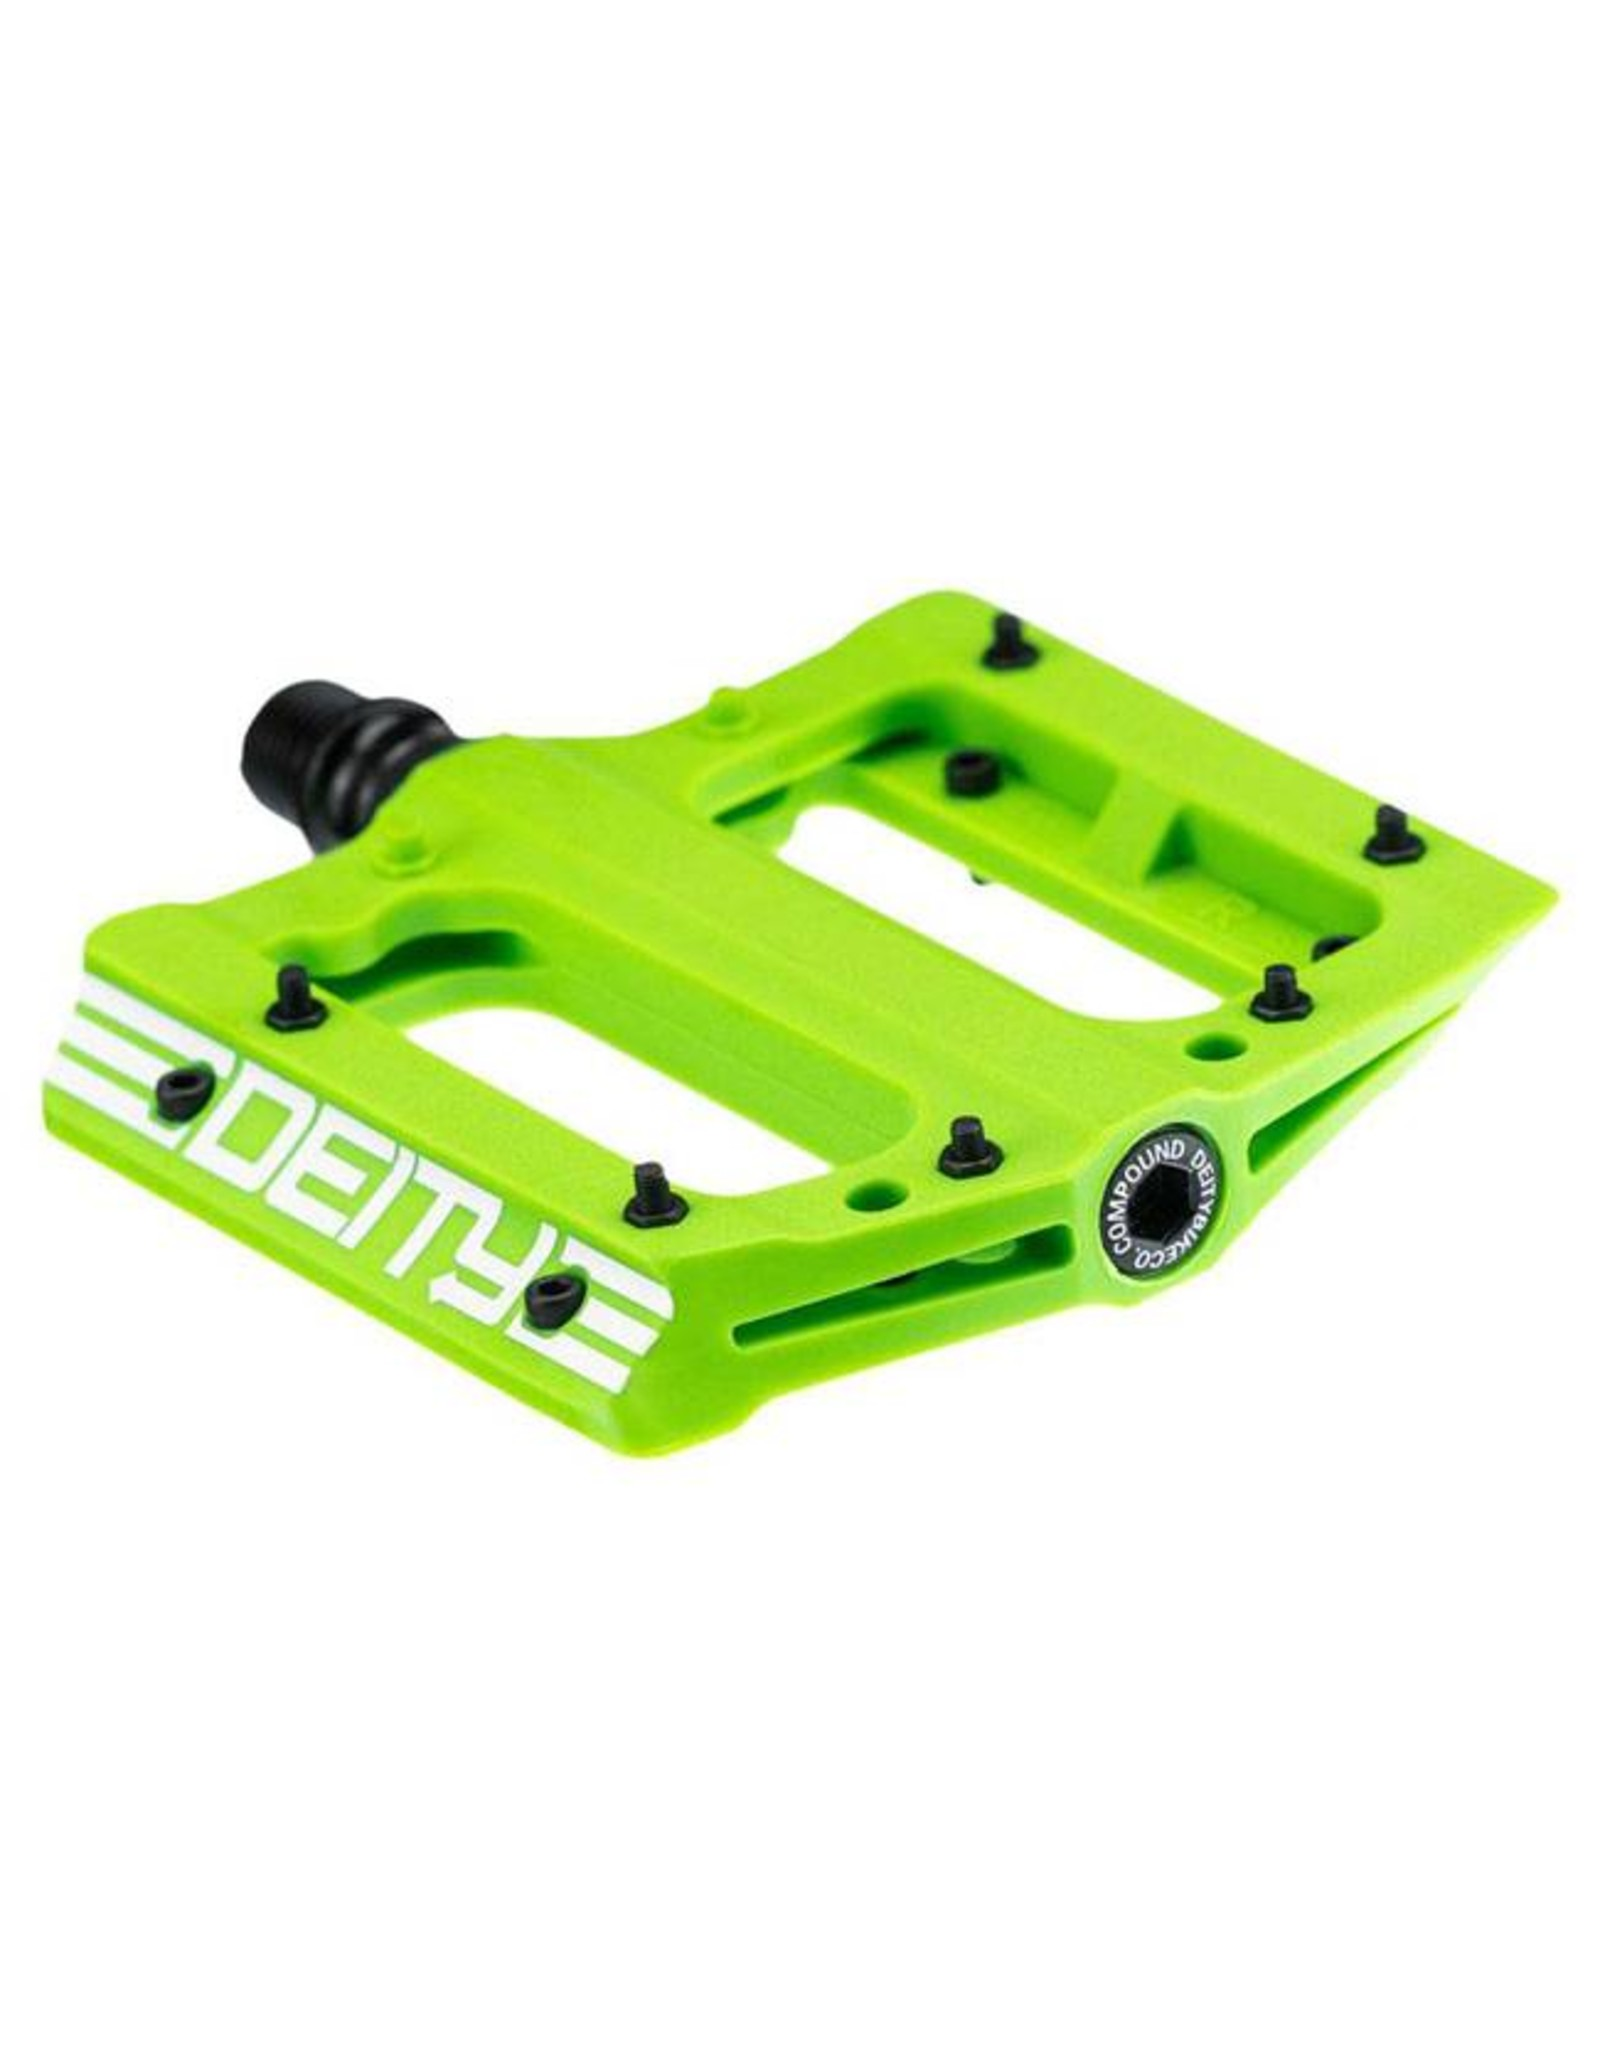 Deity Components Deity Compound Pedals: Green/White Graphics